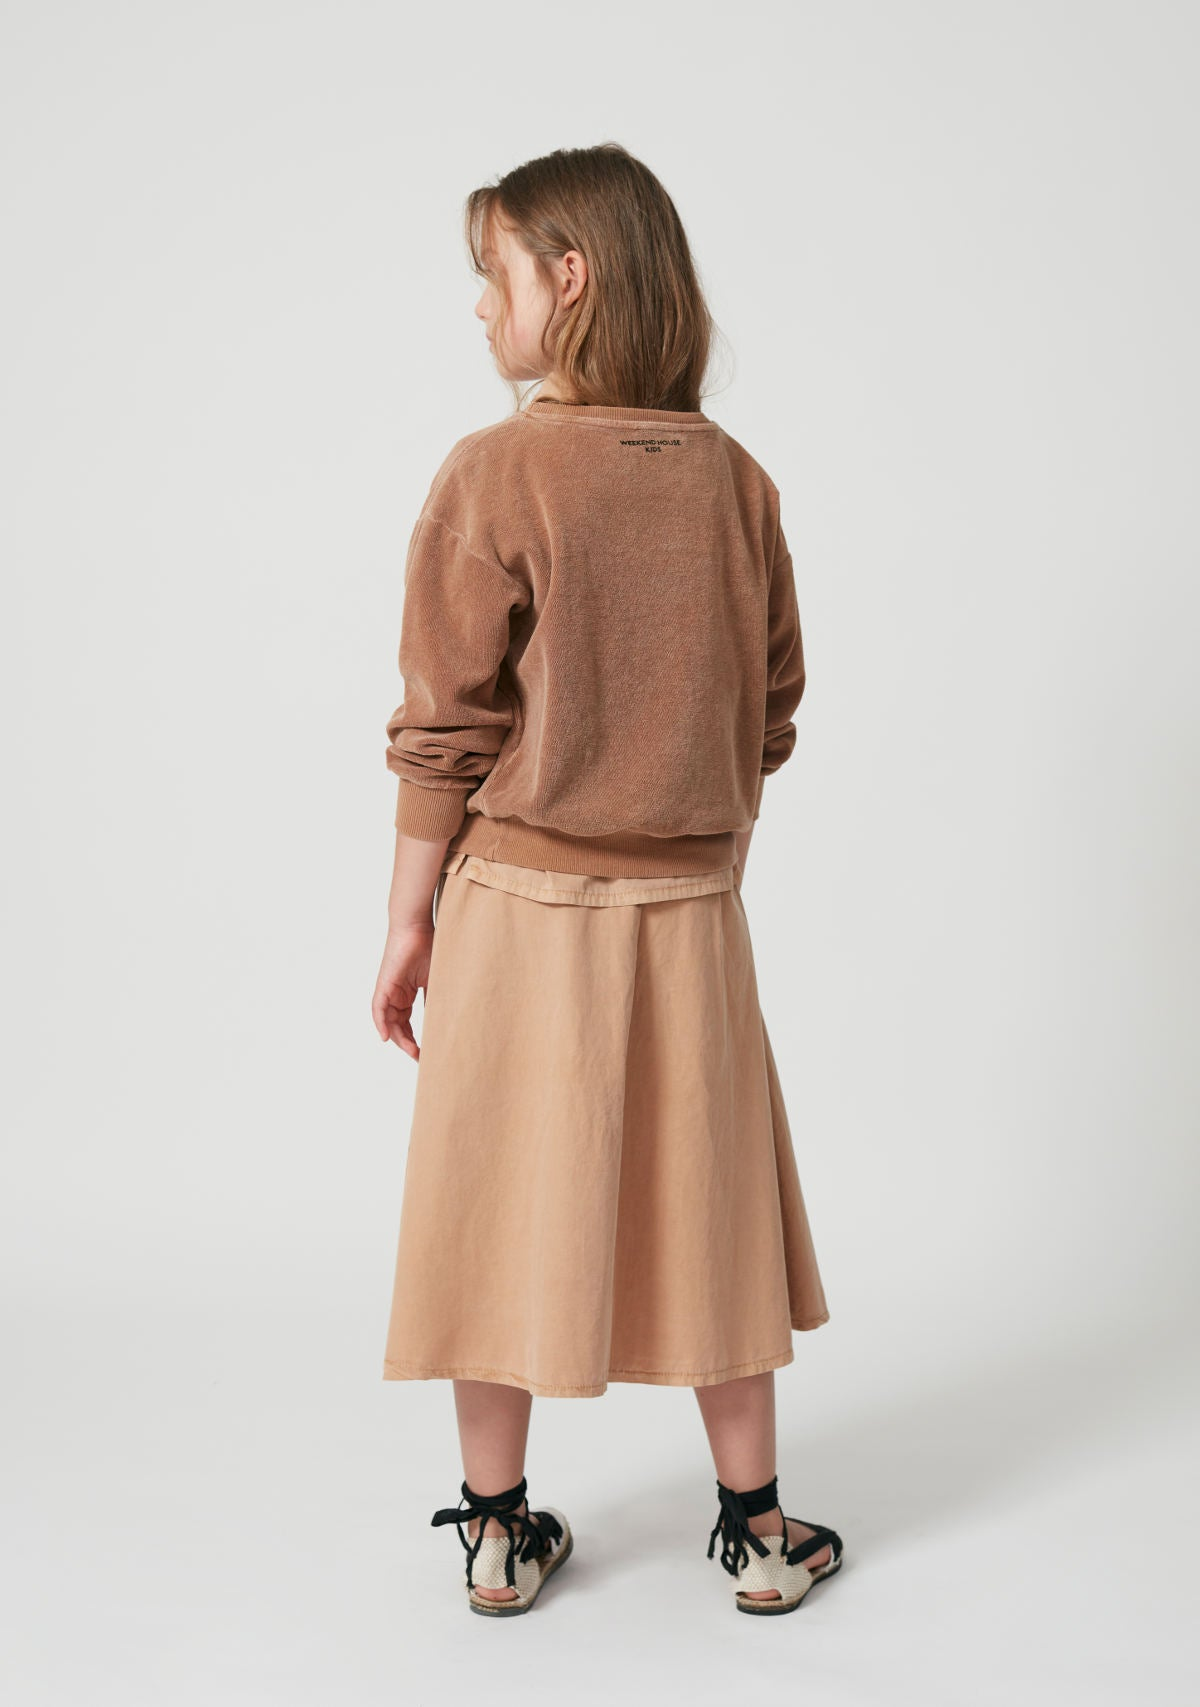 Weekend House Kids Camel Flamingo Skirt